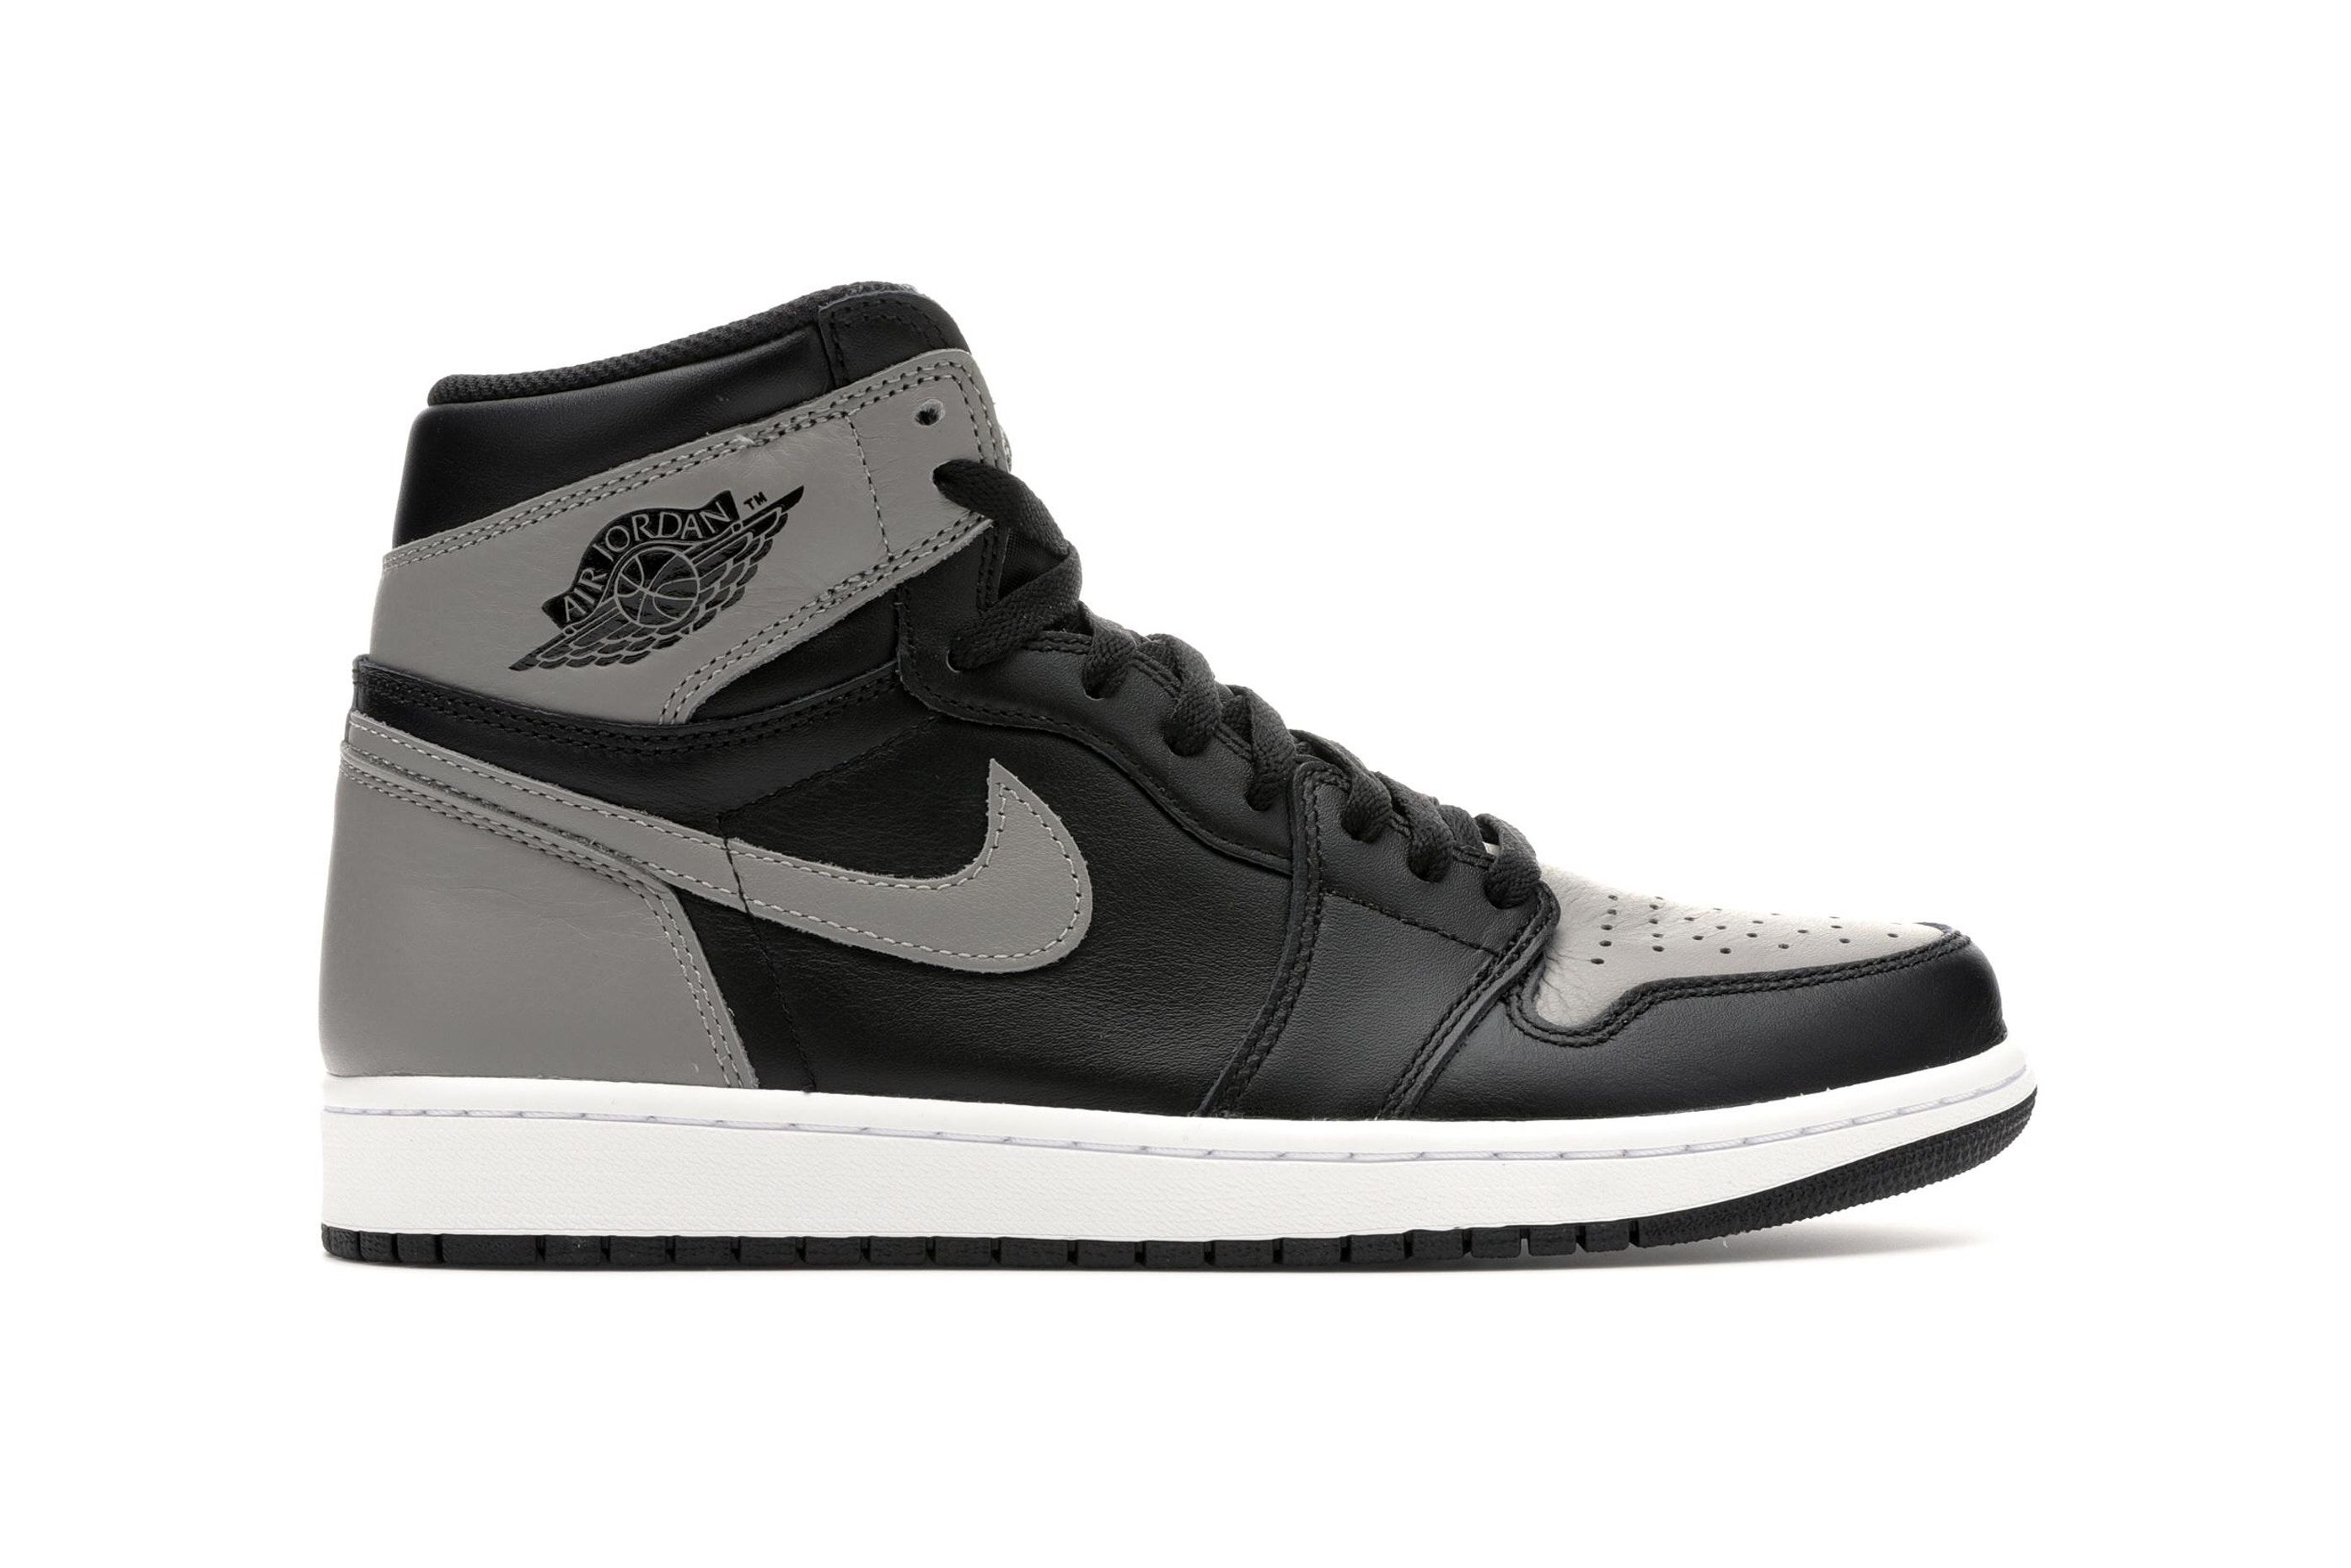 Check out the jordan 1 retro high shadow 2018 available